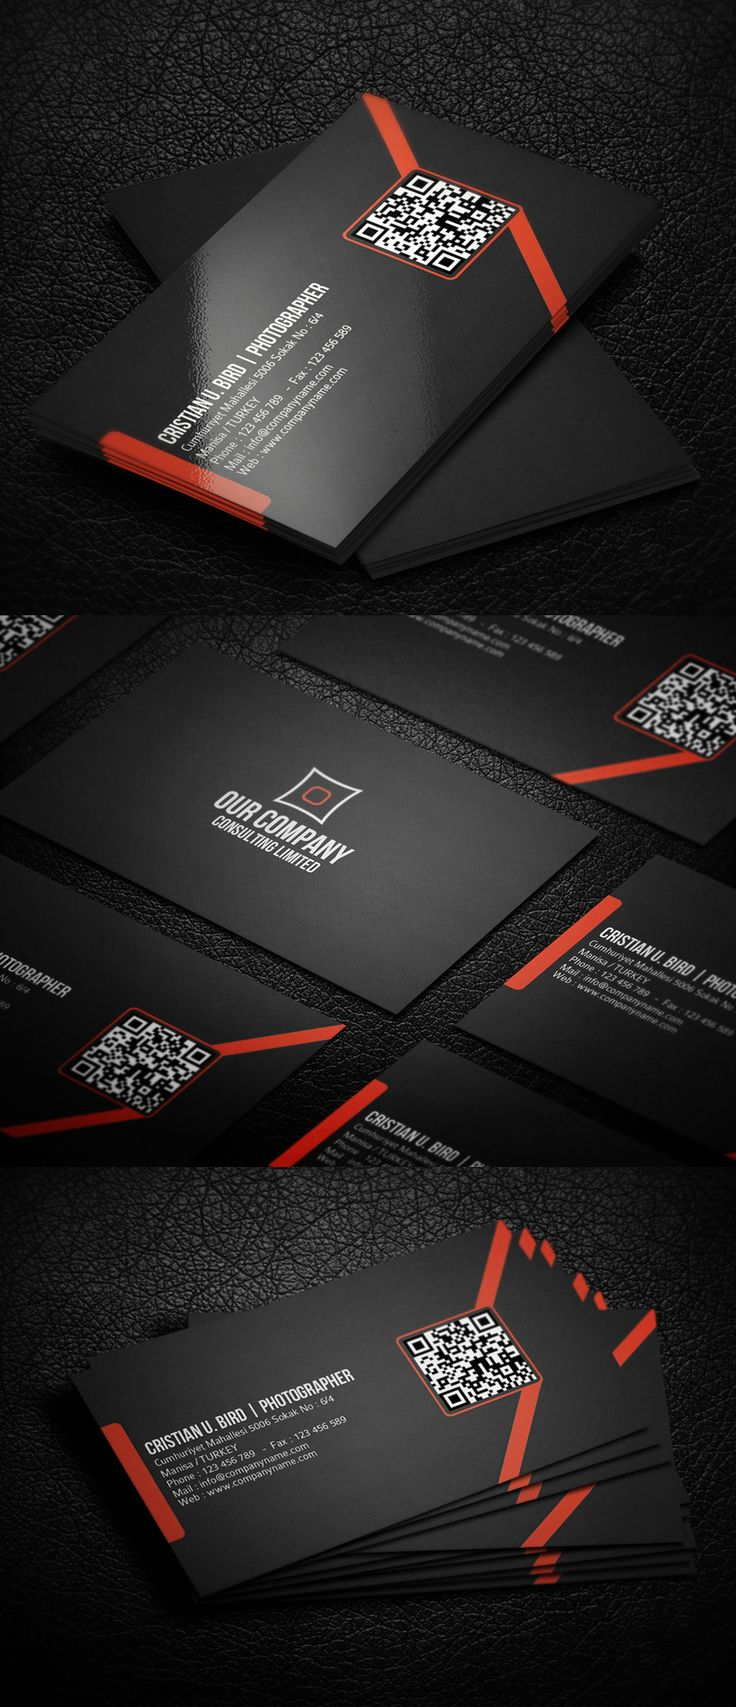 Poster design with qr code - 206 Best Images About Awesome Designs I N S P I R A T I O N S On Pinterest Logos Business Card Design And Corporate Design